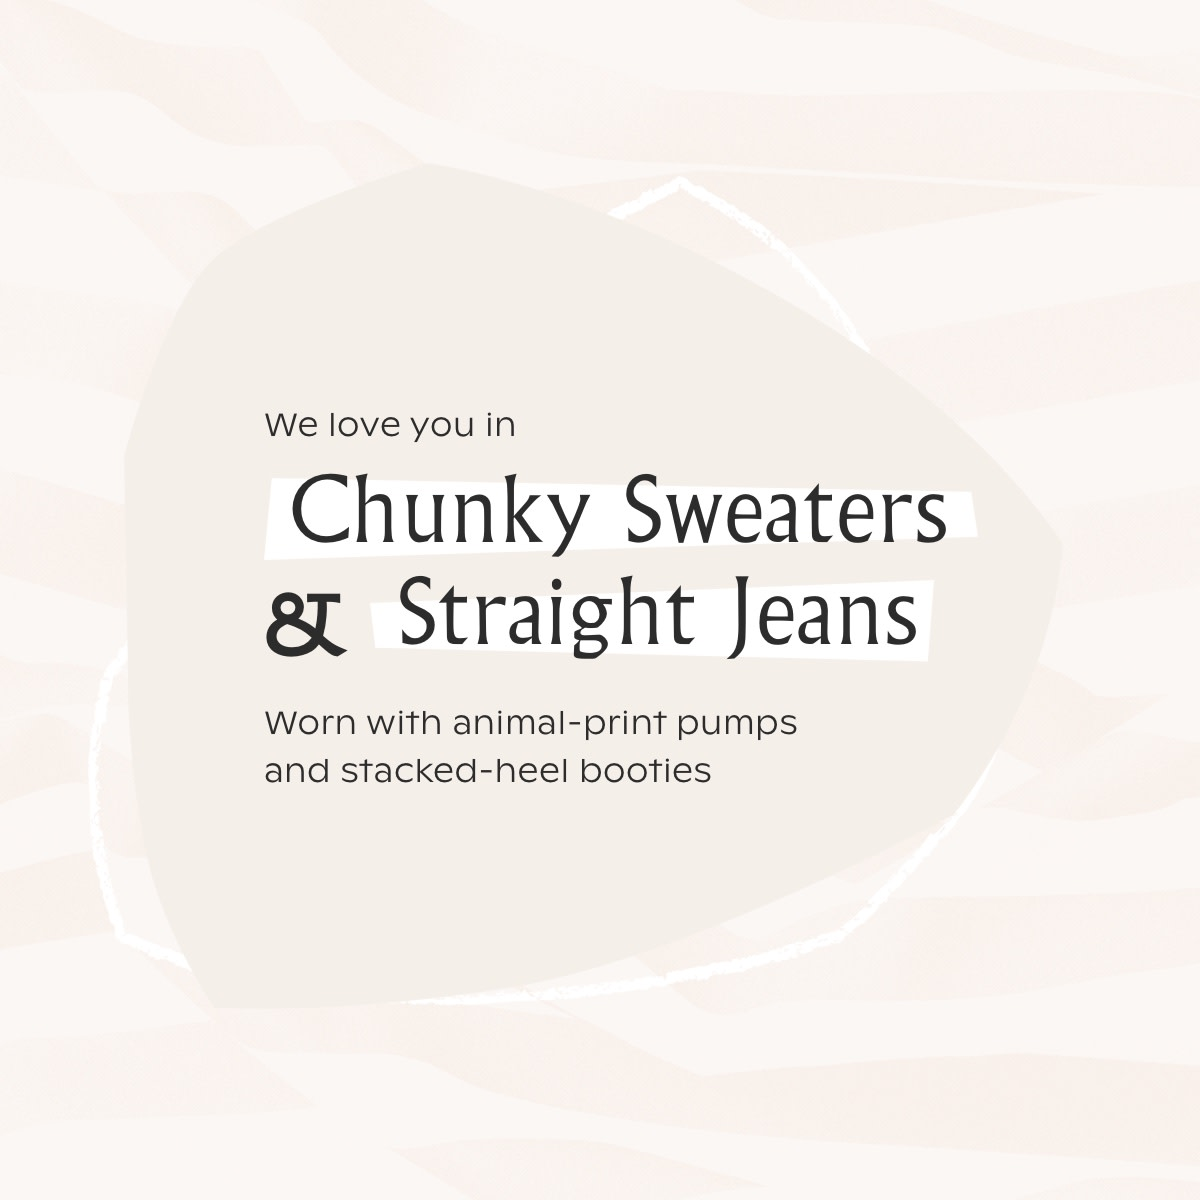 Chunky knits and straight jeans: worn with animal print pumps and stacked heel booties